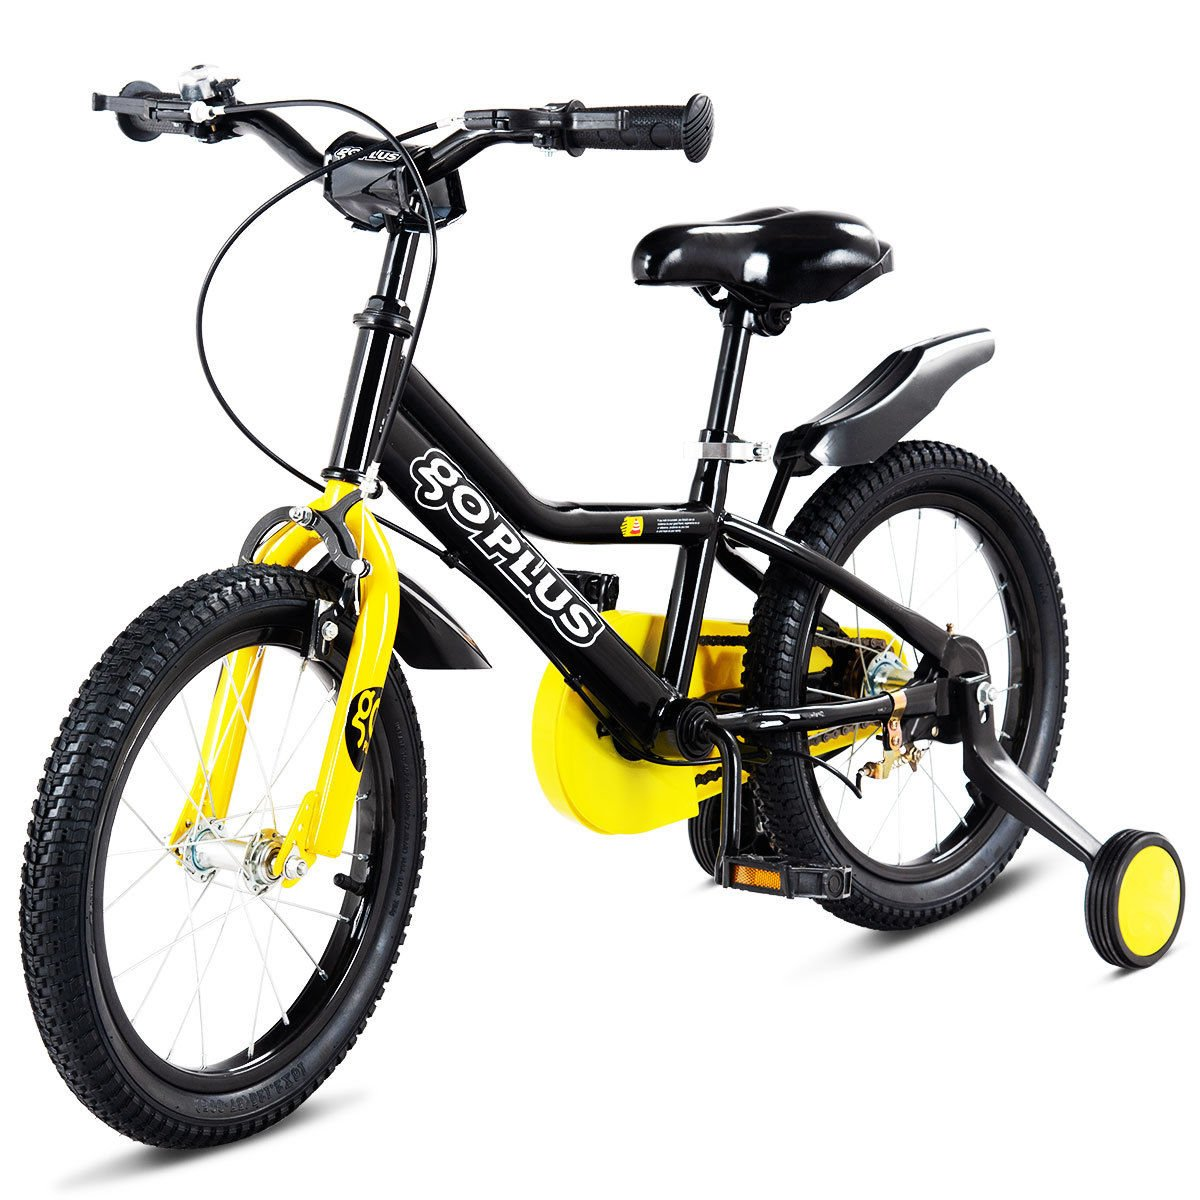 Goplus 12'' Kid's Bike Freestyle Outdoor Sports Bicycle with Training Wheels Boys Girls Cycling Superbuy